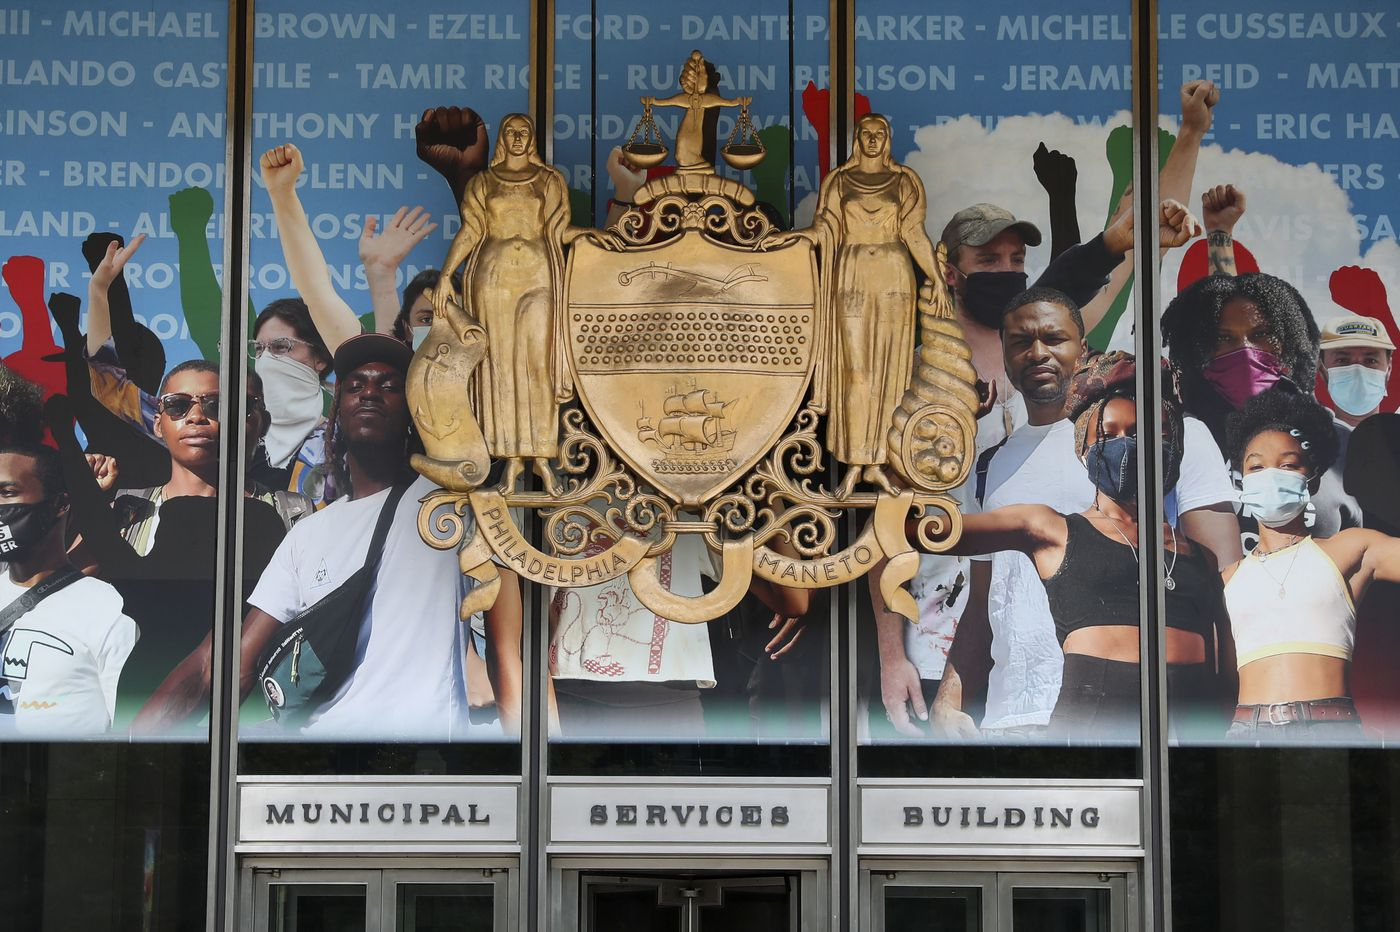 'Crown' is the new mural on the Municipal Services Building that highlights Black Lives Matter protesters